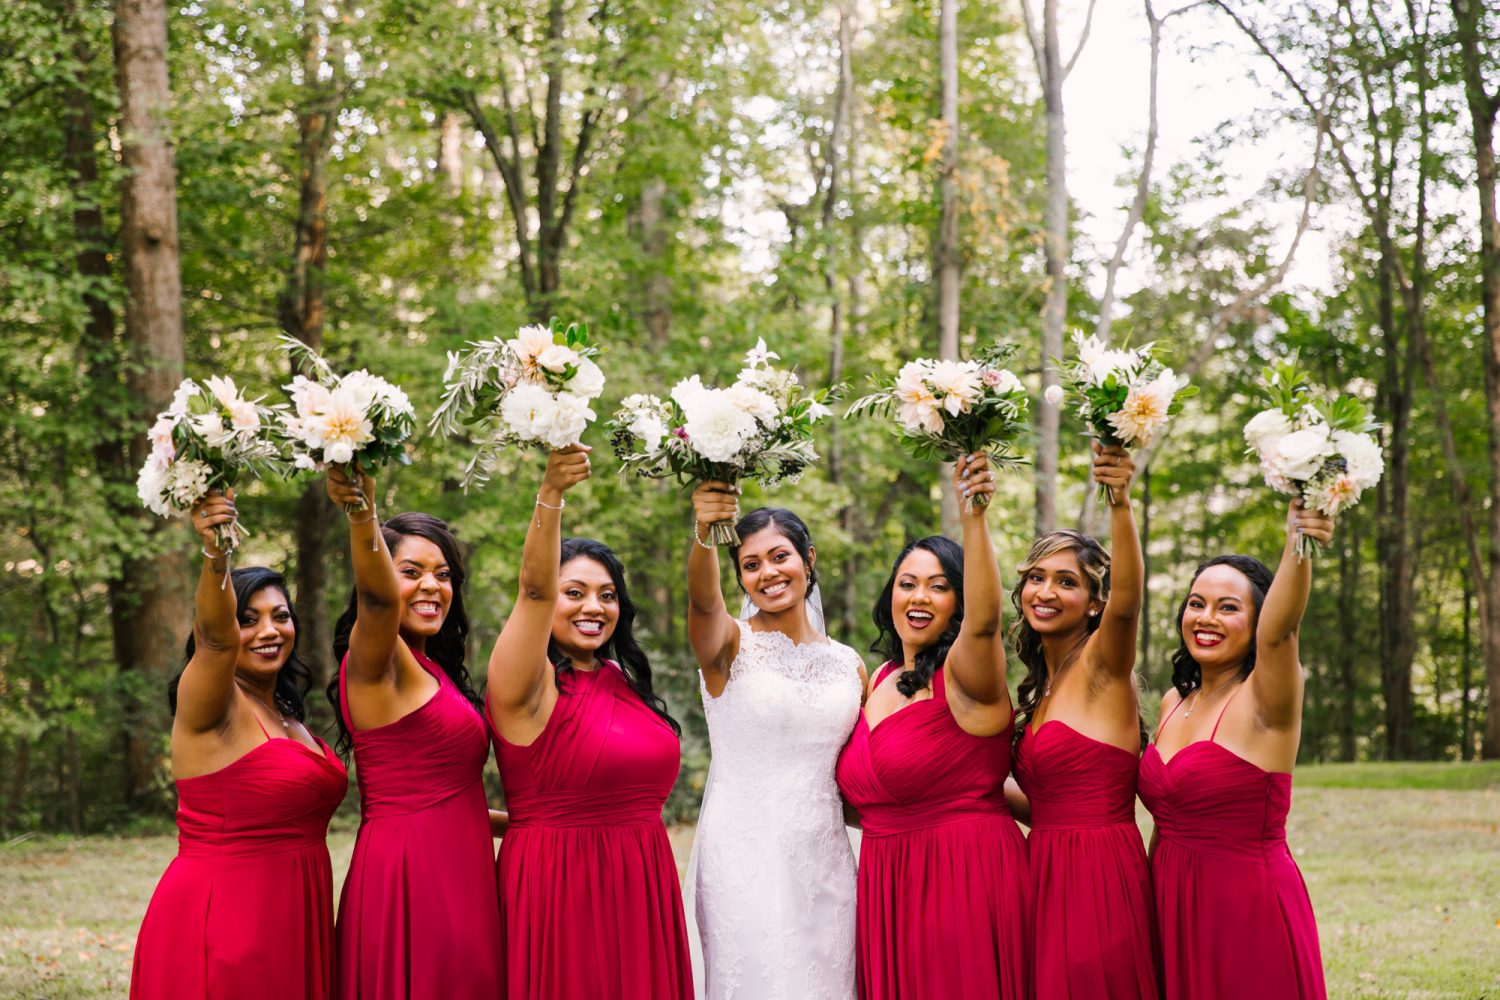 Waynesville NC Wedding Photography | Bouquets in the Air